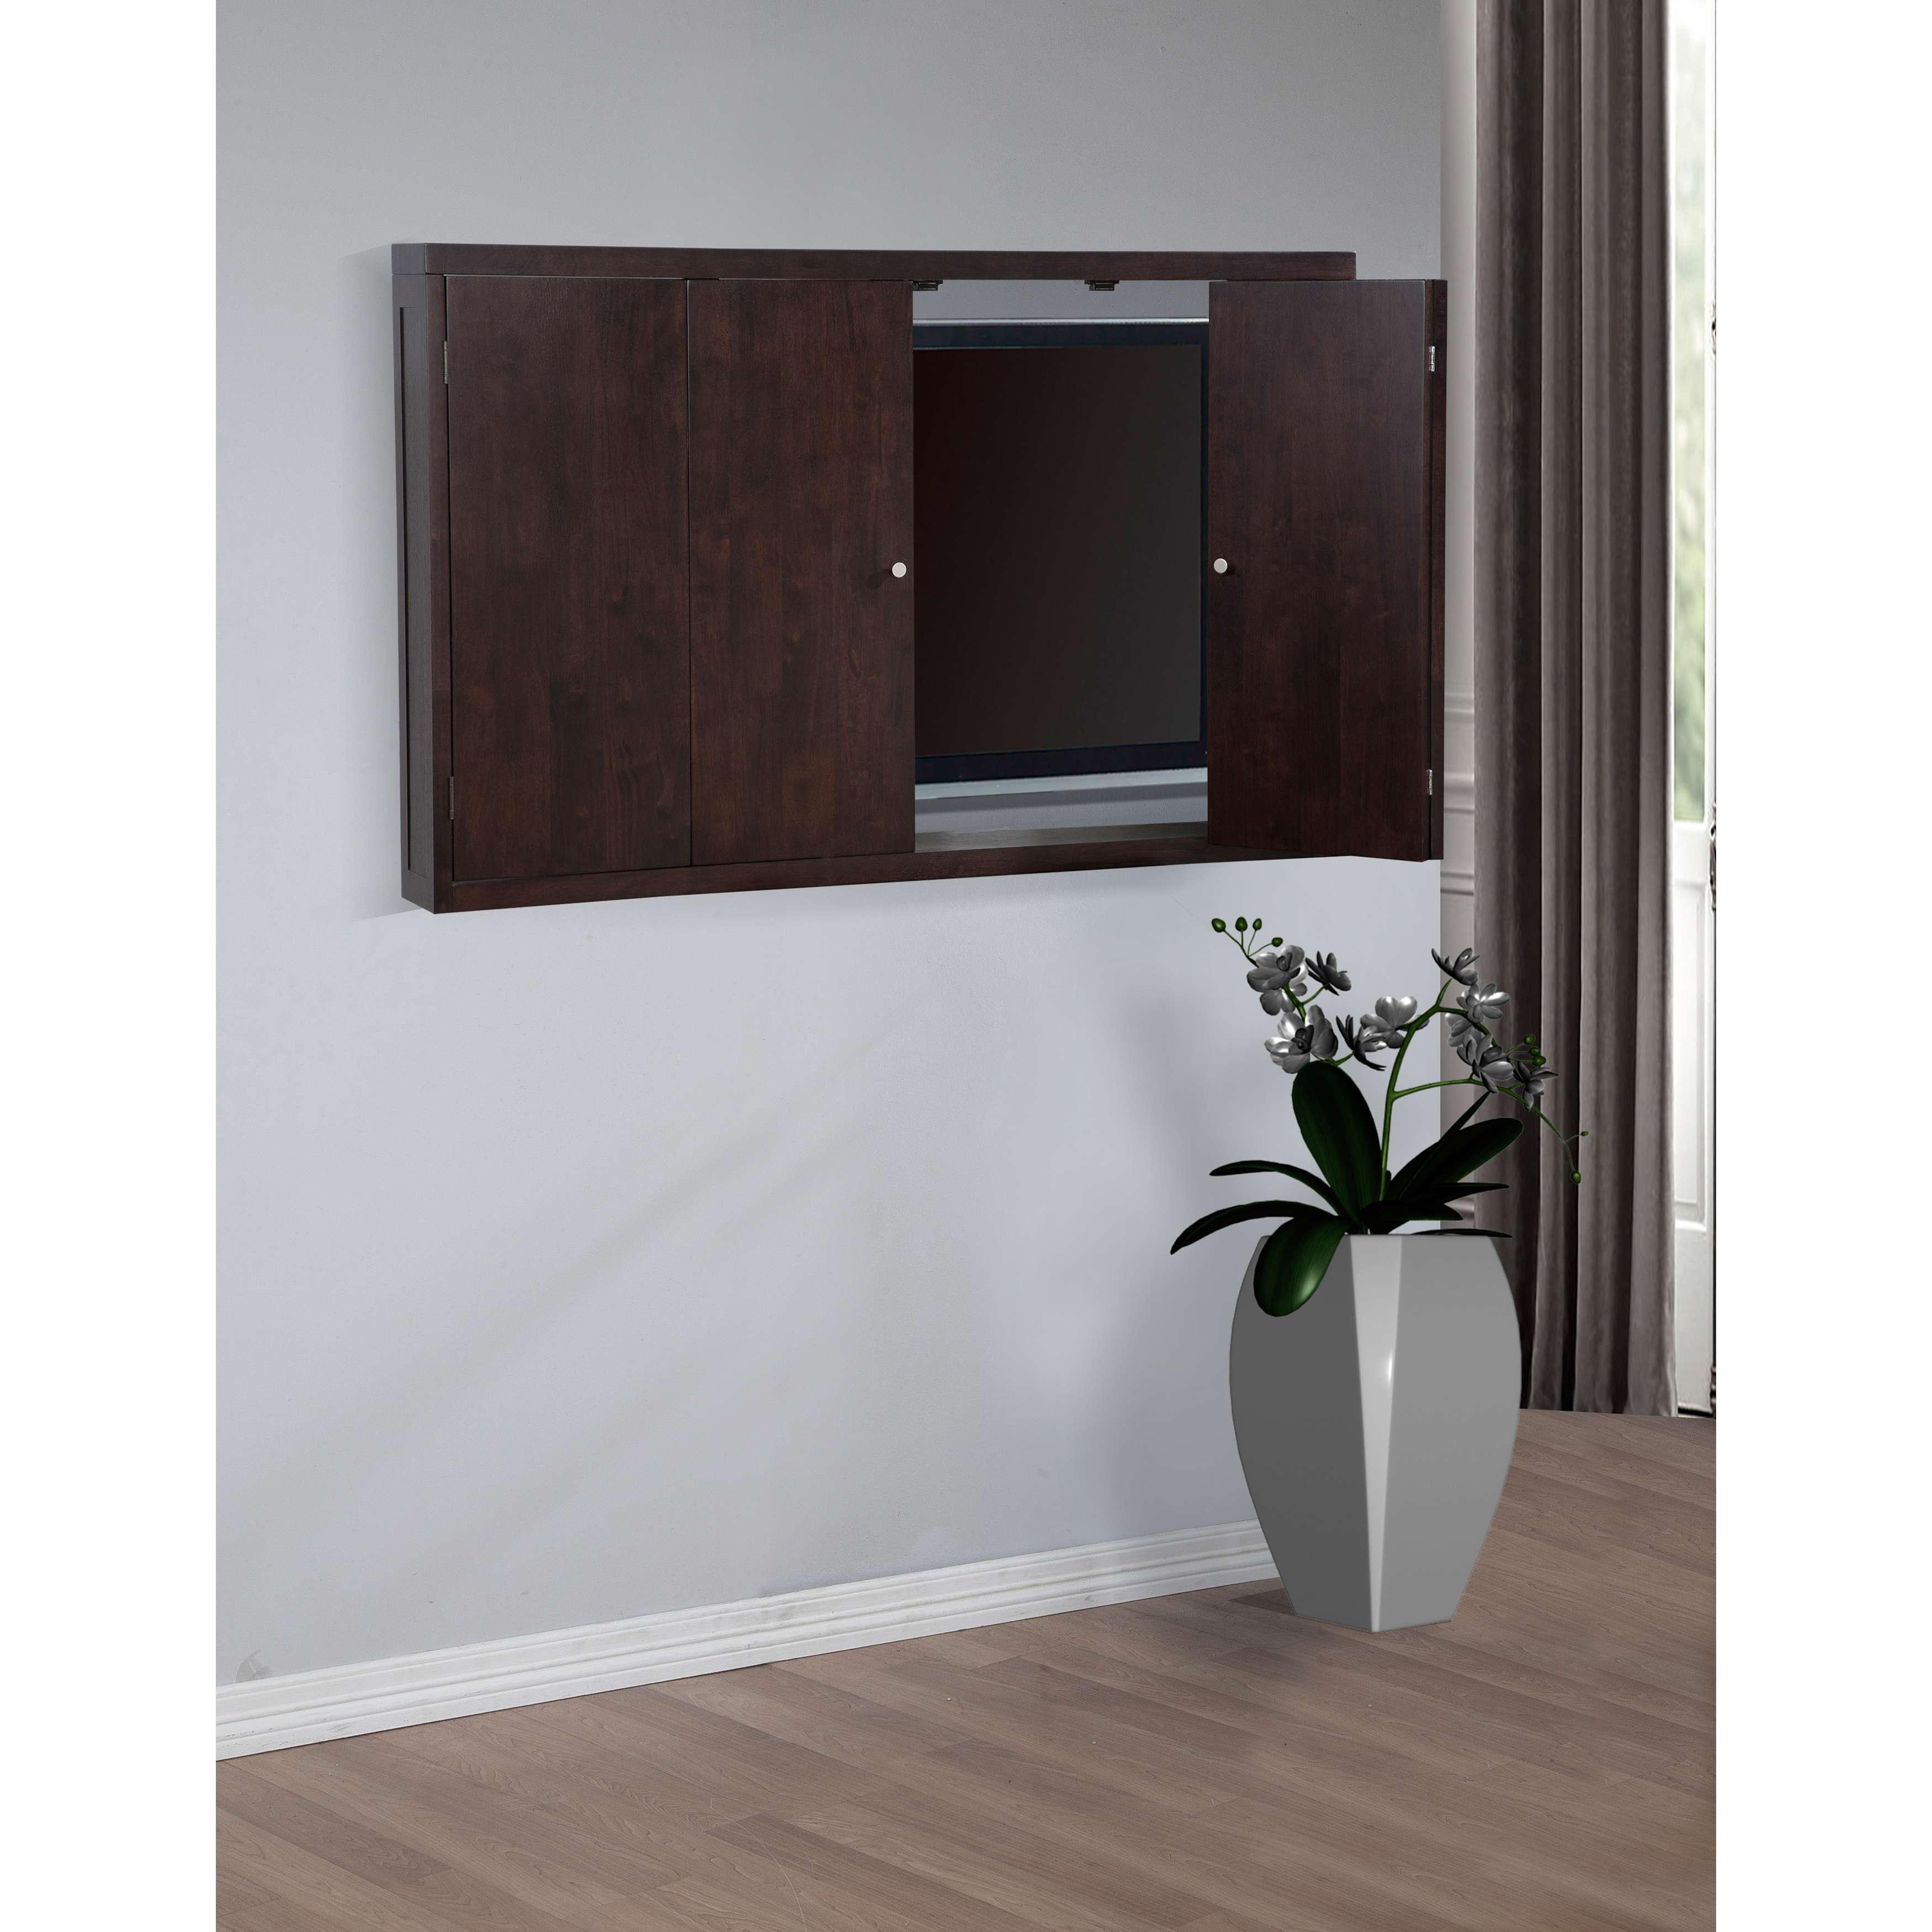 Simple Wall Mounted Tv Cabinet With Doors With Cool Flower On Vase Pertaining To Wall Mounted Tv Cabinets With Doors (View 4 of 20)